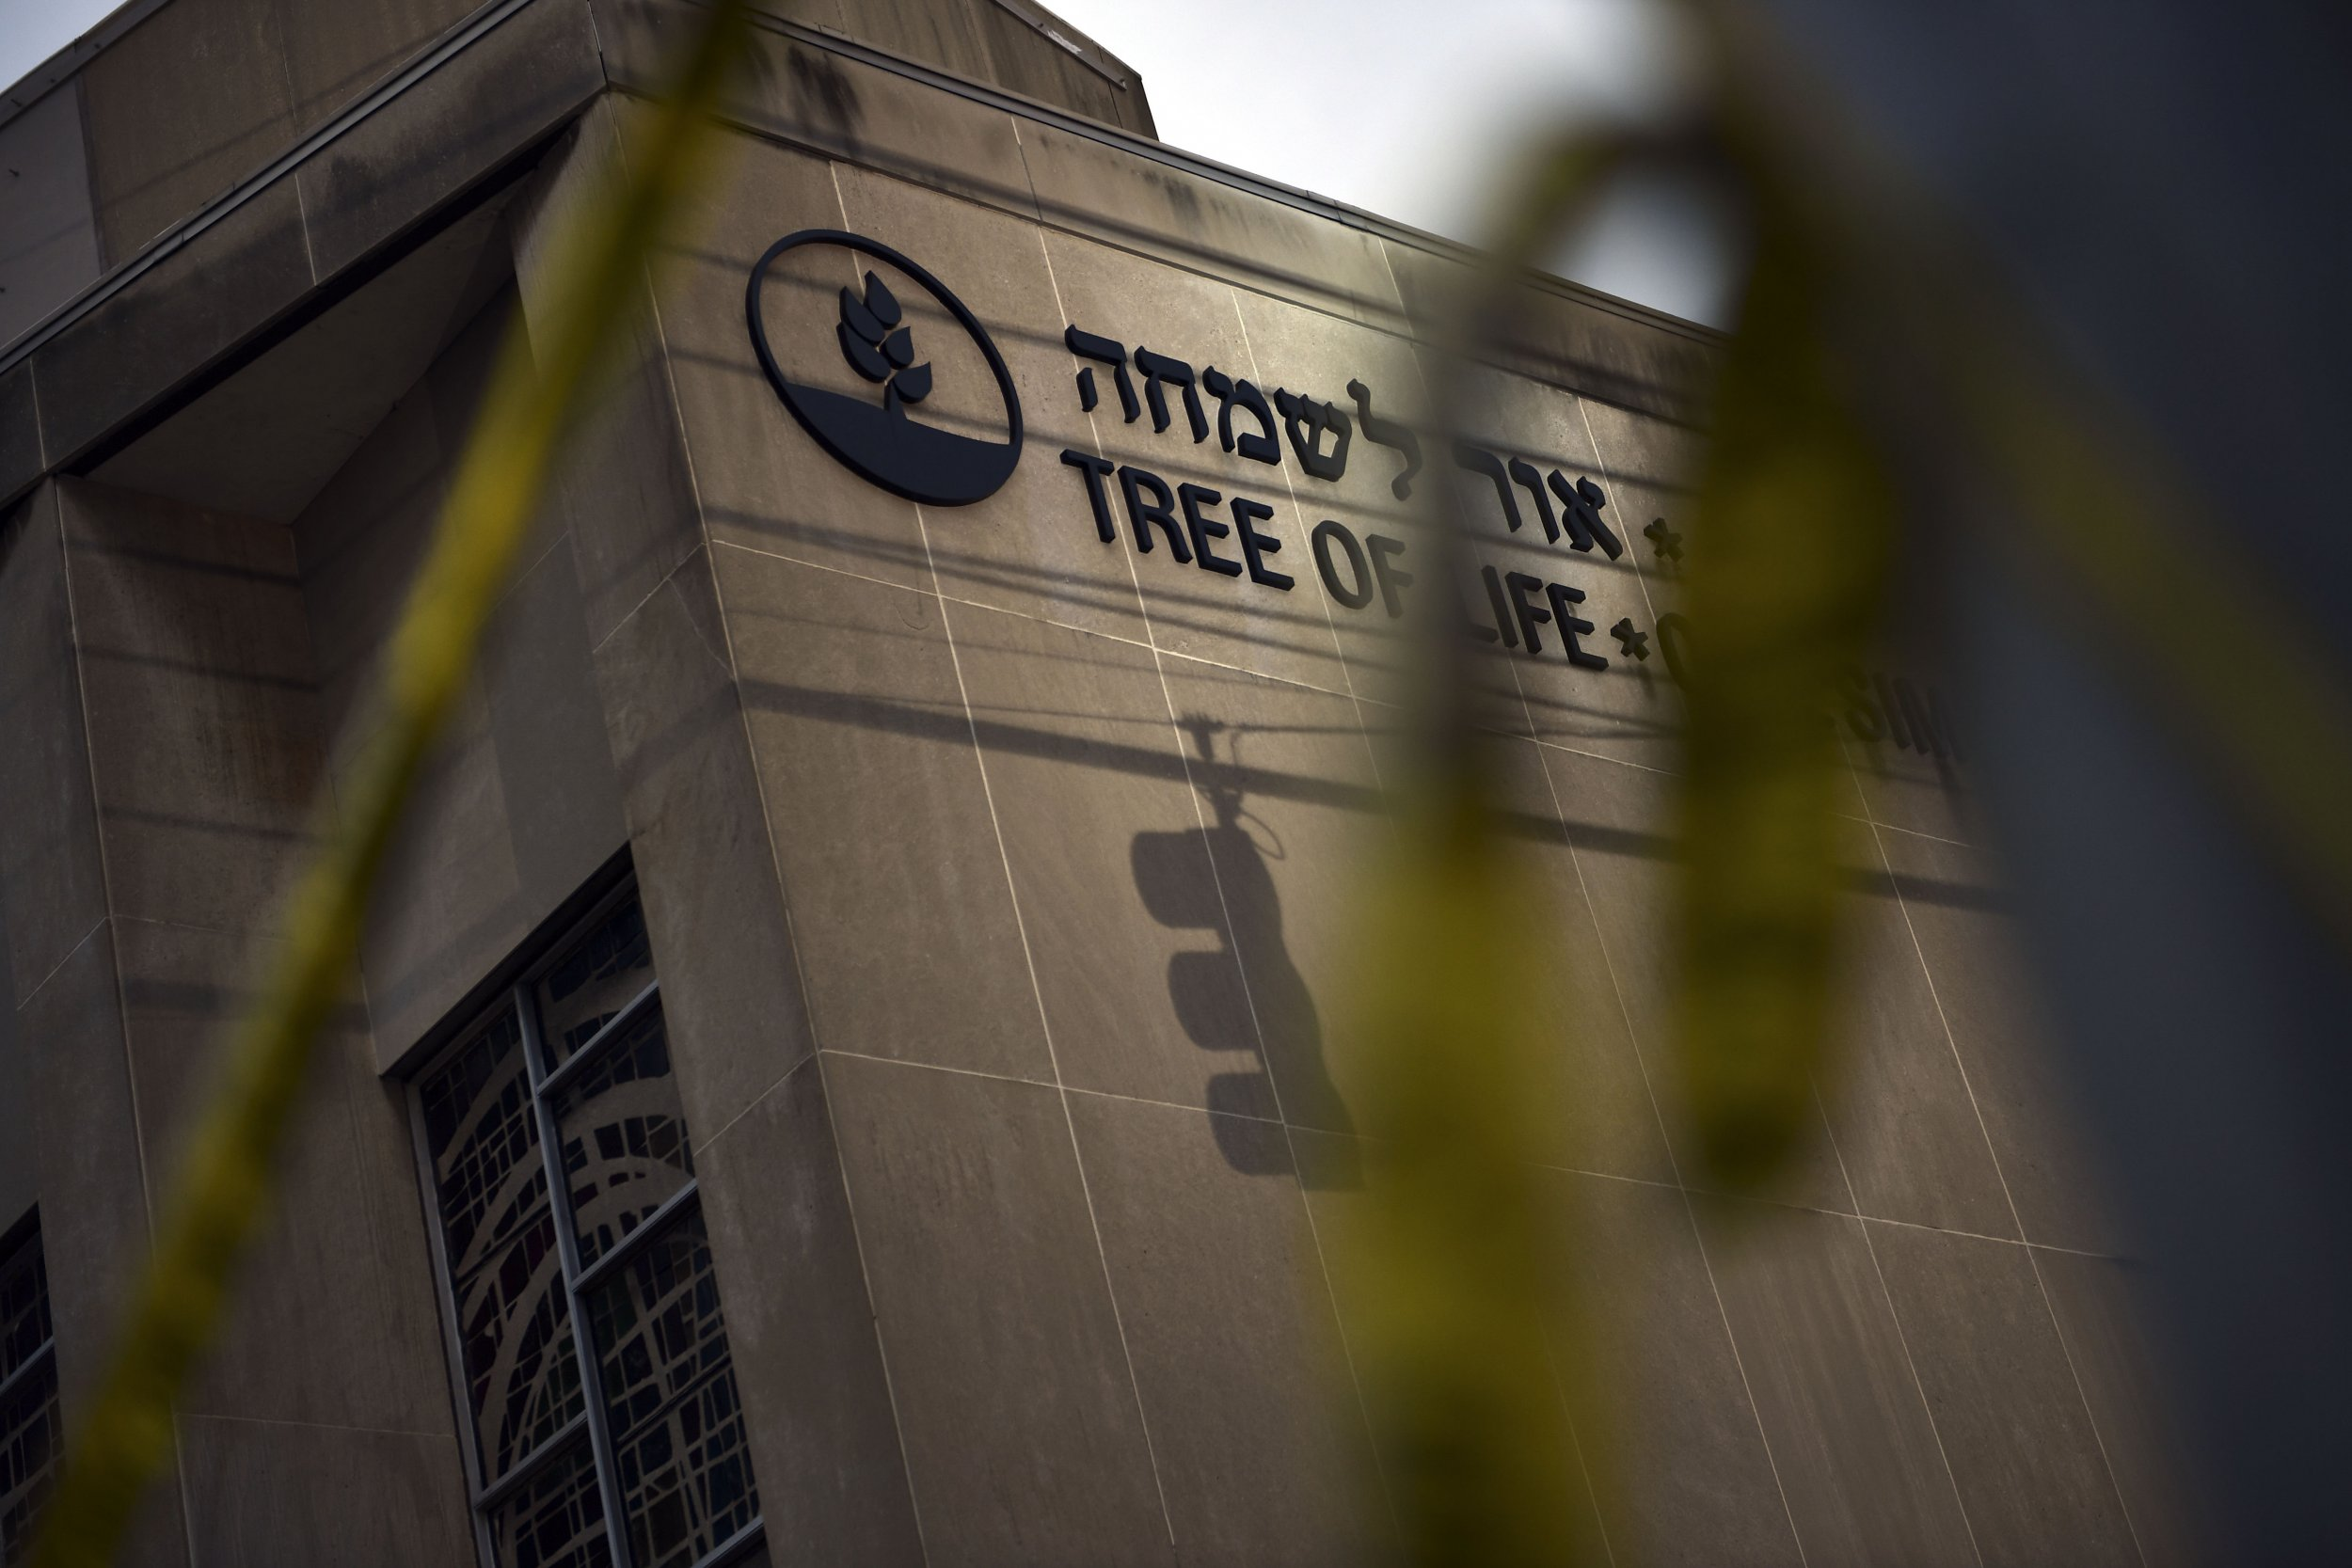 Studies, Researchers Say Anti-Semitic Posts on Social Media Are on the Rise